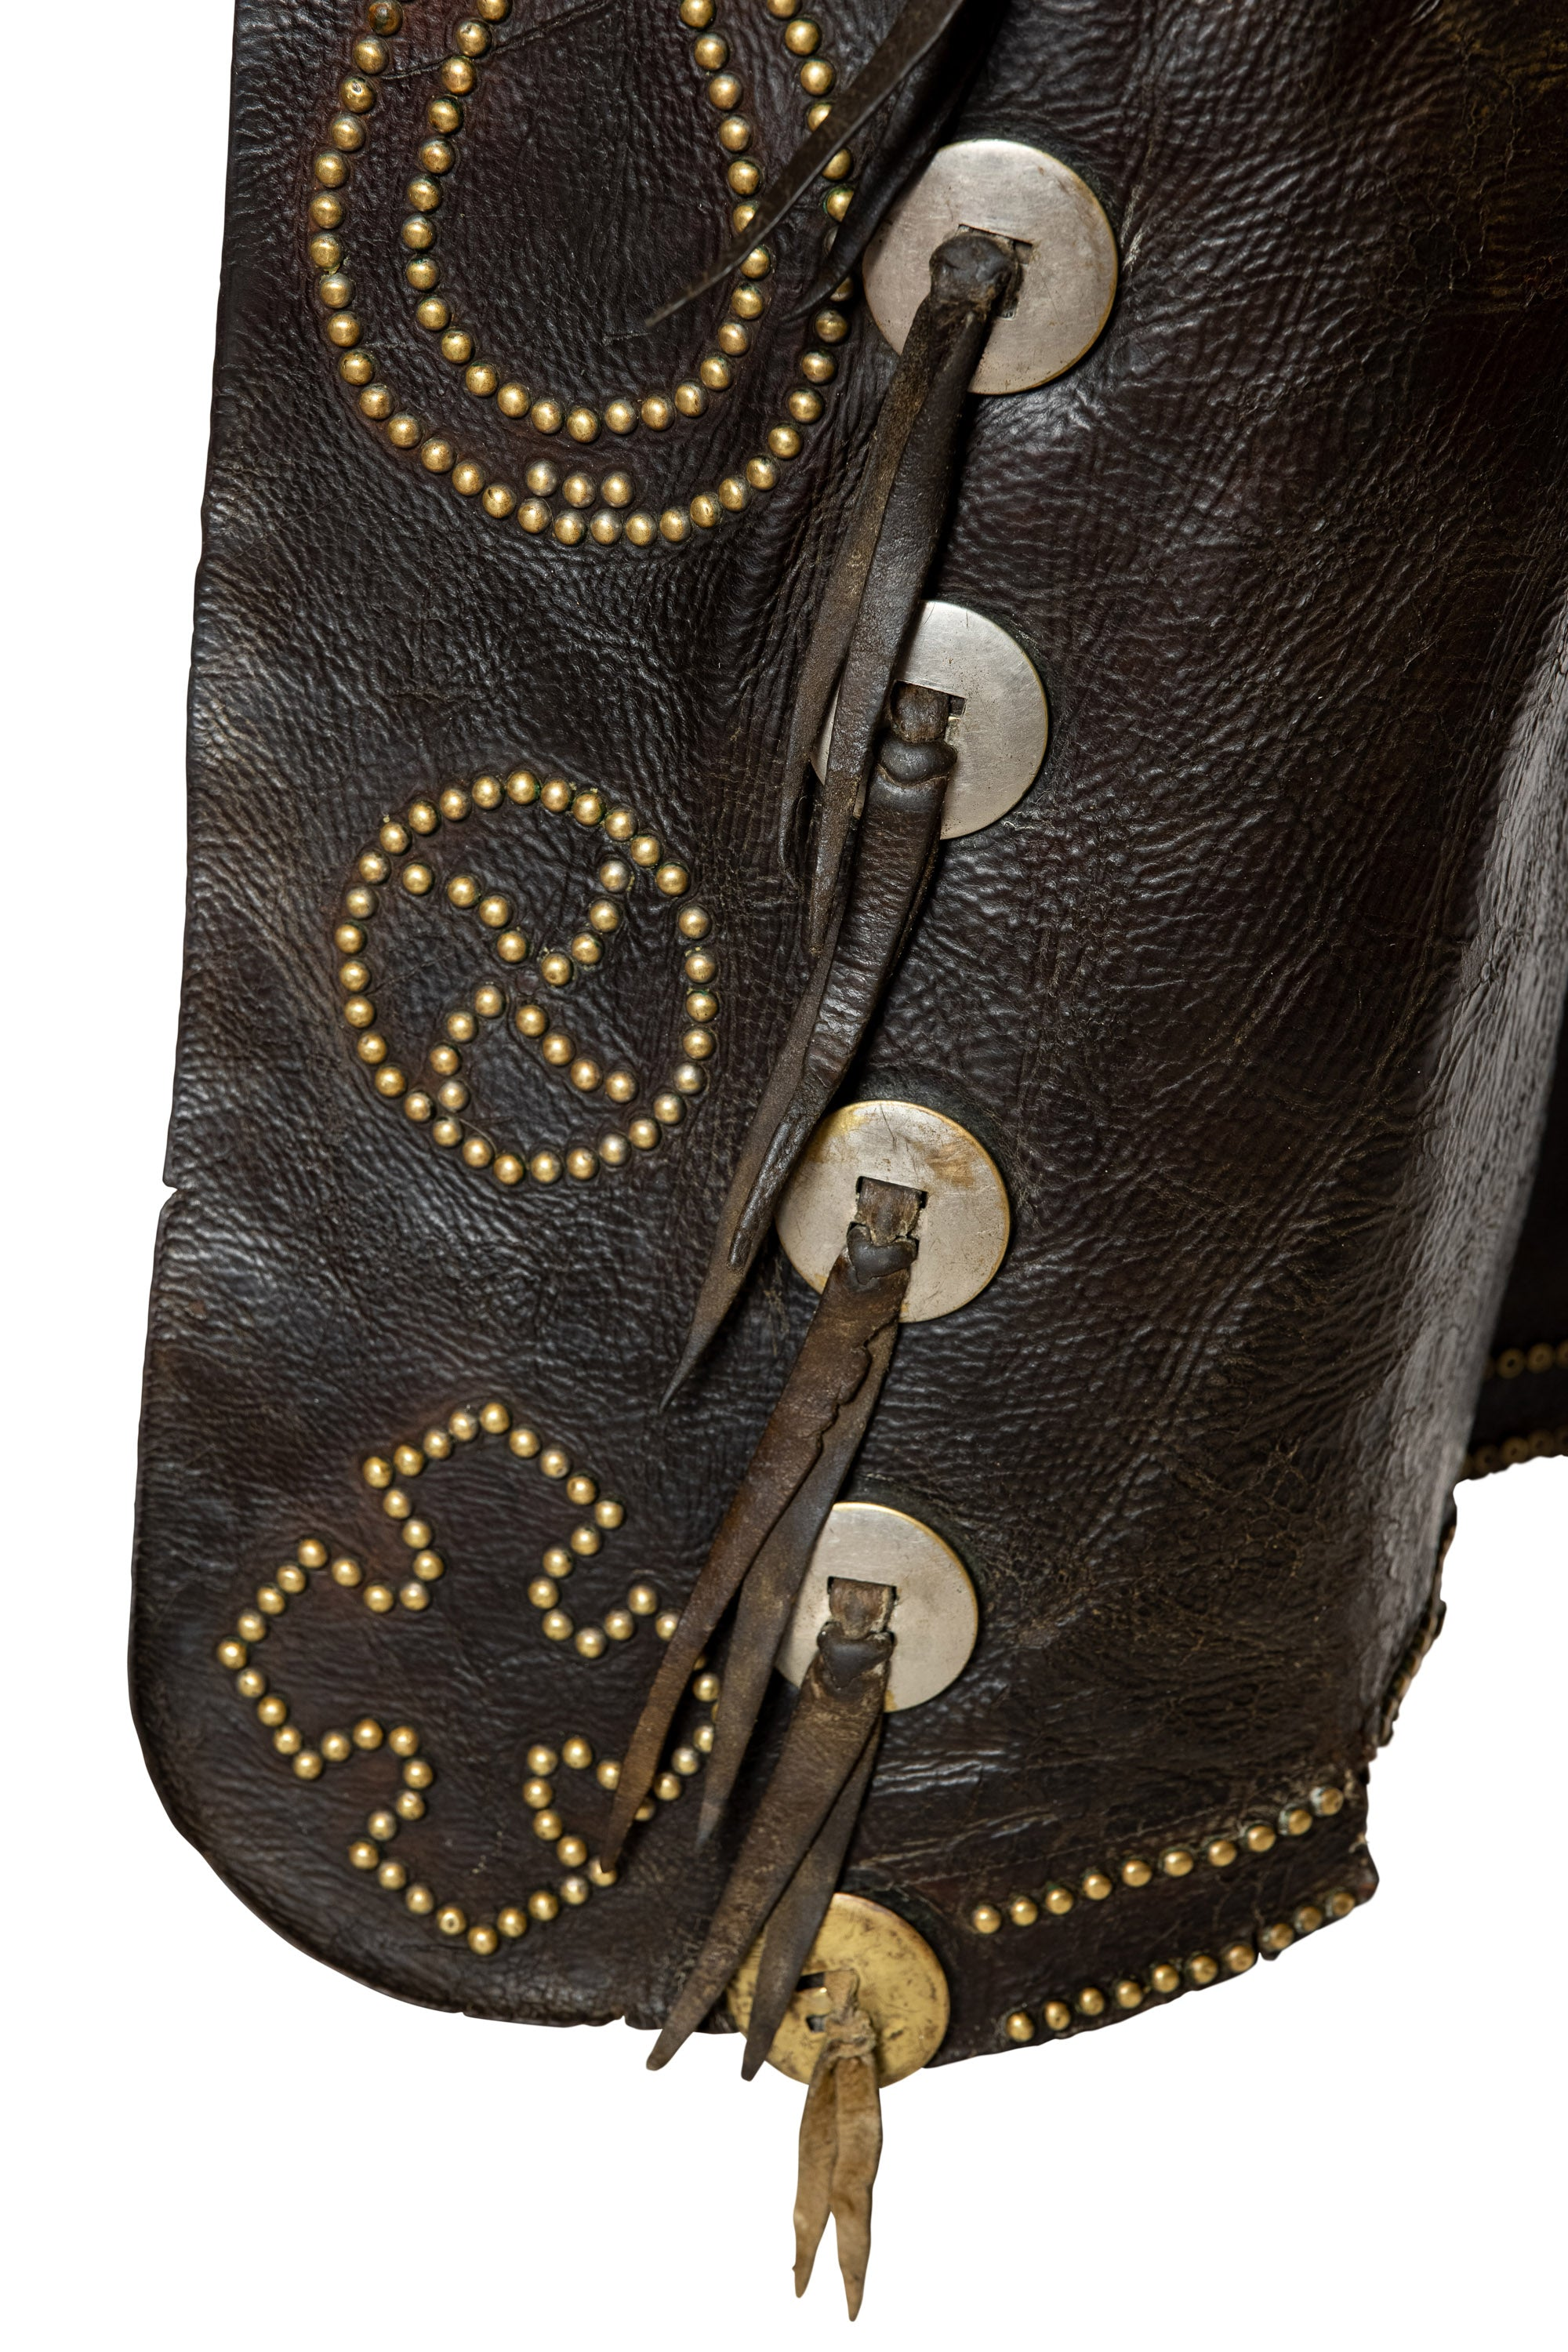 Miscellaneous, Chaps, George Lawrence Company, Portland, Or., Studded, Tooled Leather, Hallmark, Vintage, 221